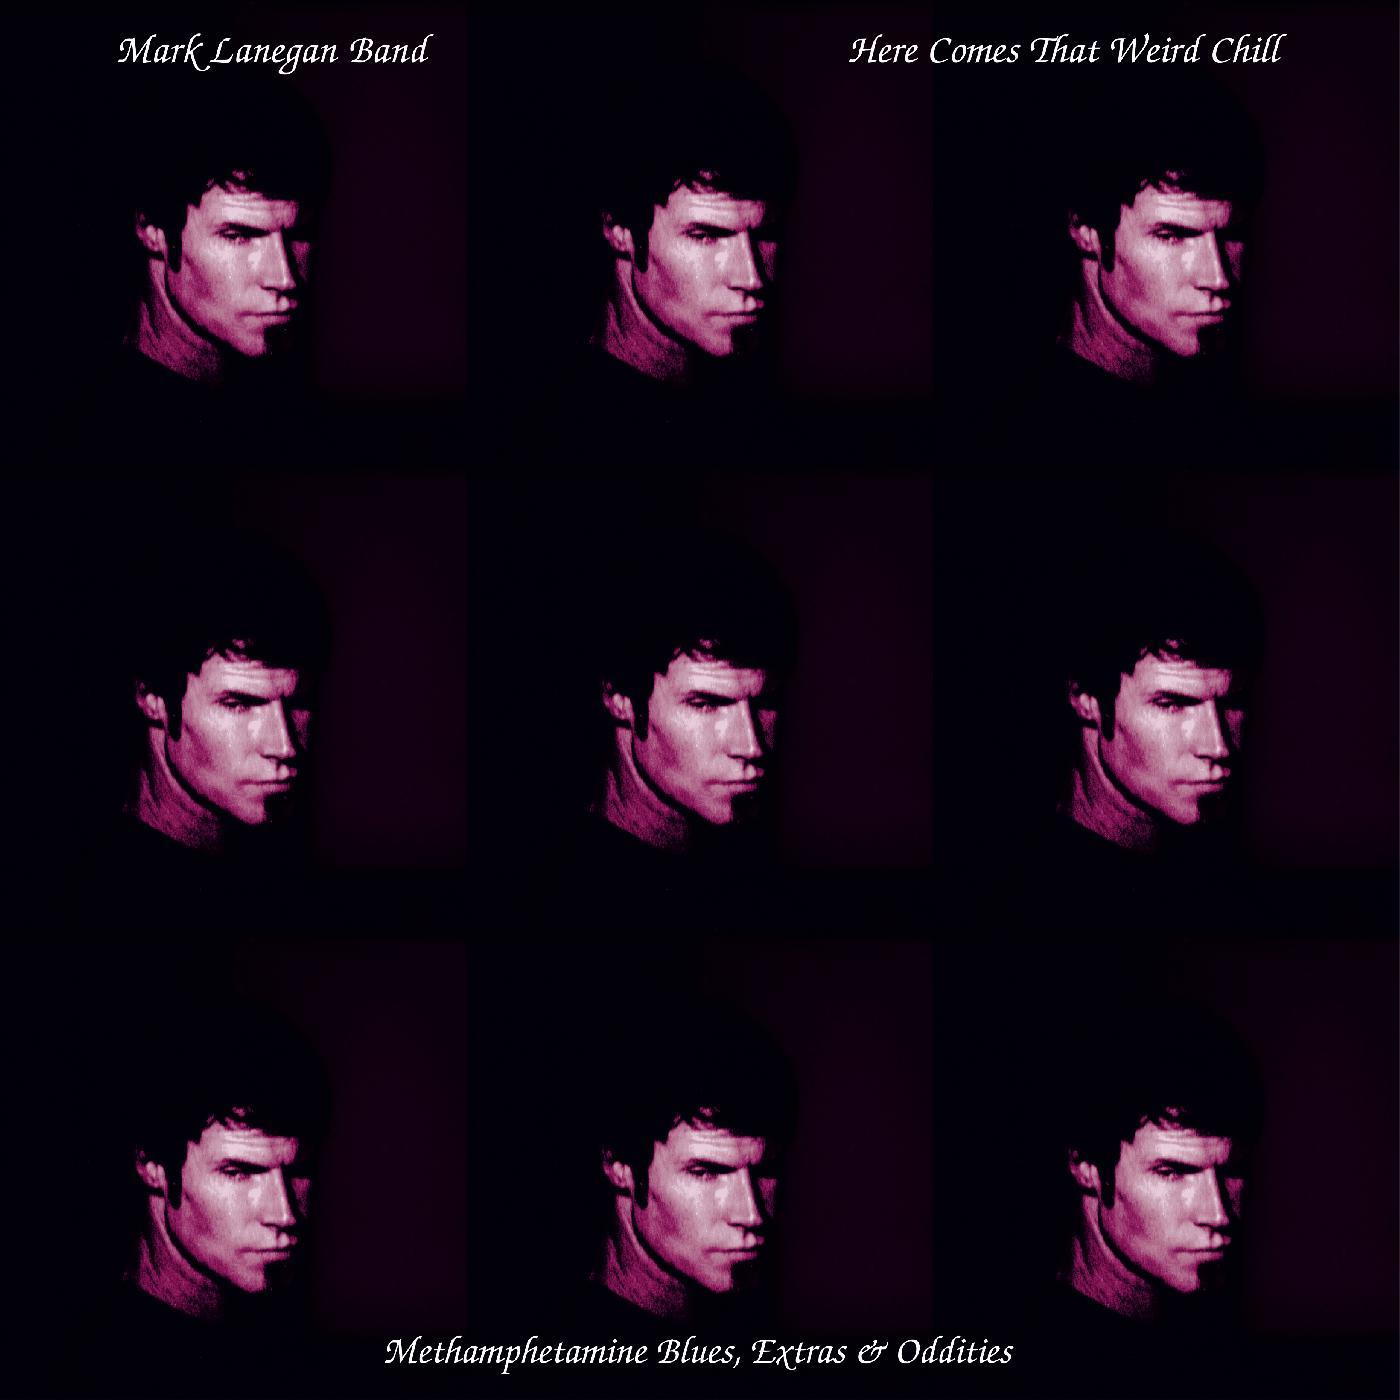 Mark Lanegan - Here Comes That Weird Chill (Methamphetamine Blues, Extras and Oddities) [RSD Drops 2021]